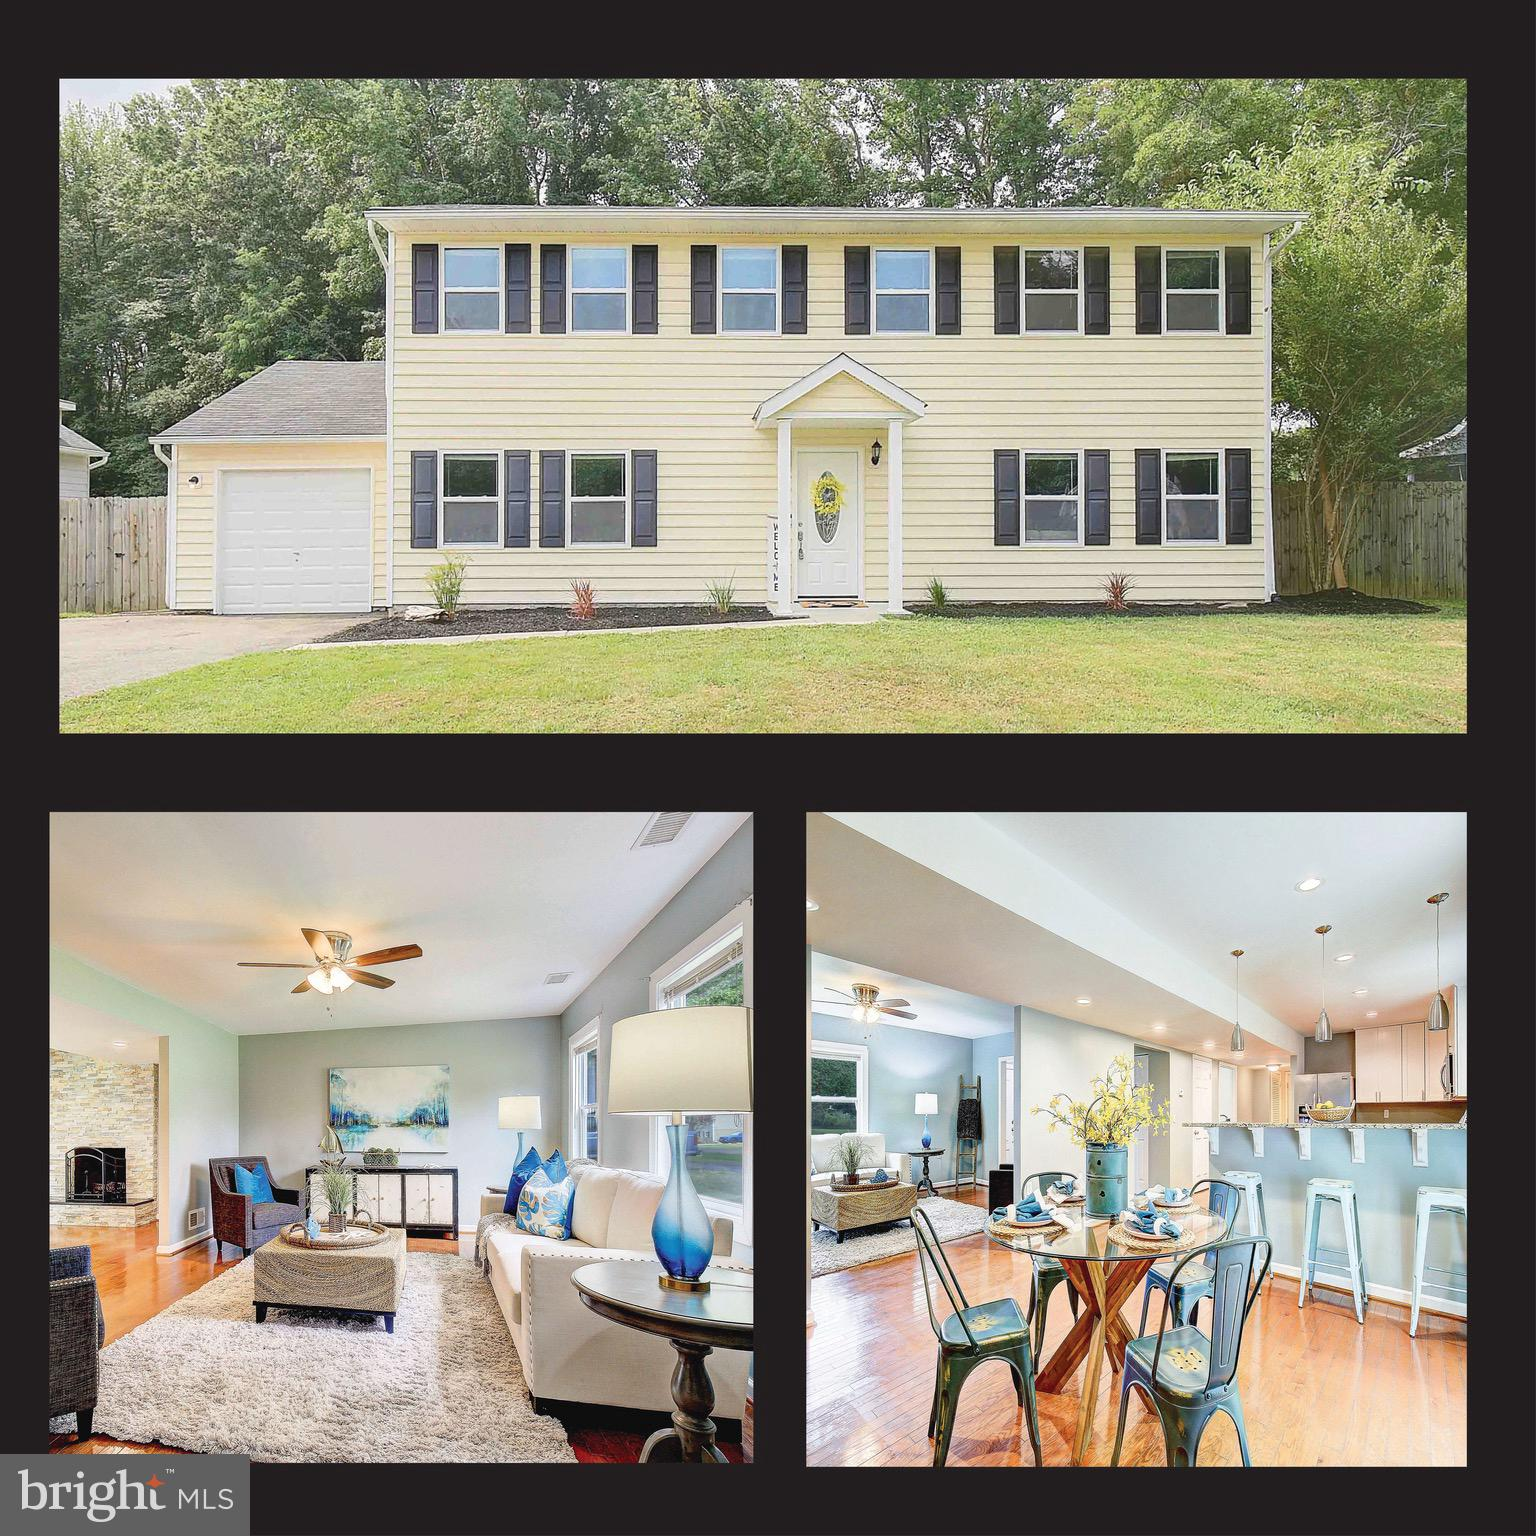 This beautiful 4 bedroom, 2.5 bath Stevensville house with 1 car garage and fenced yard has been spr